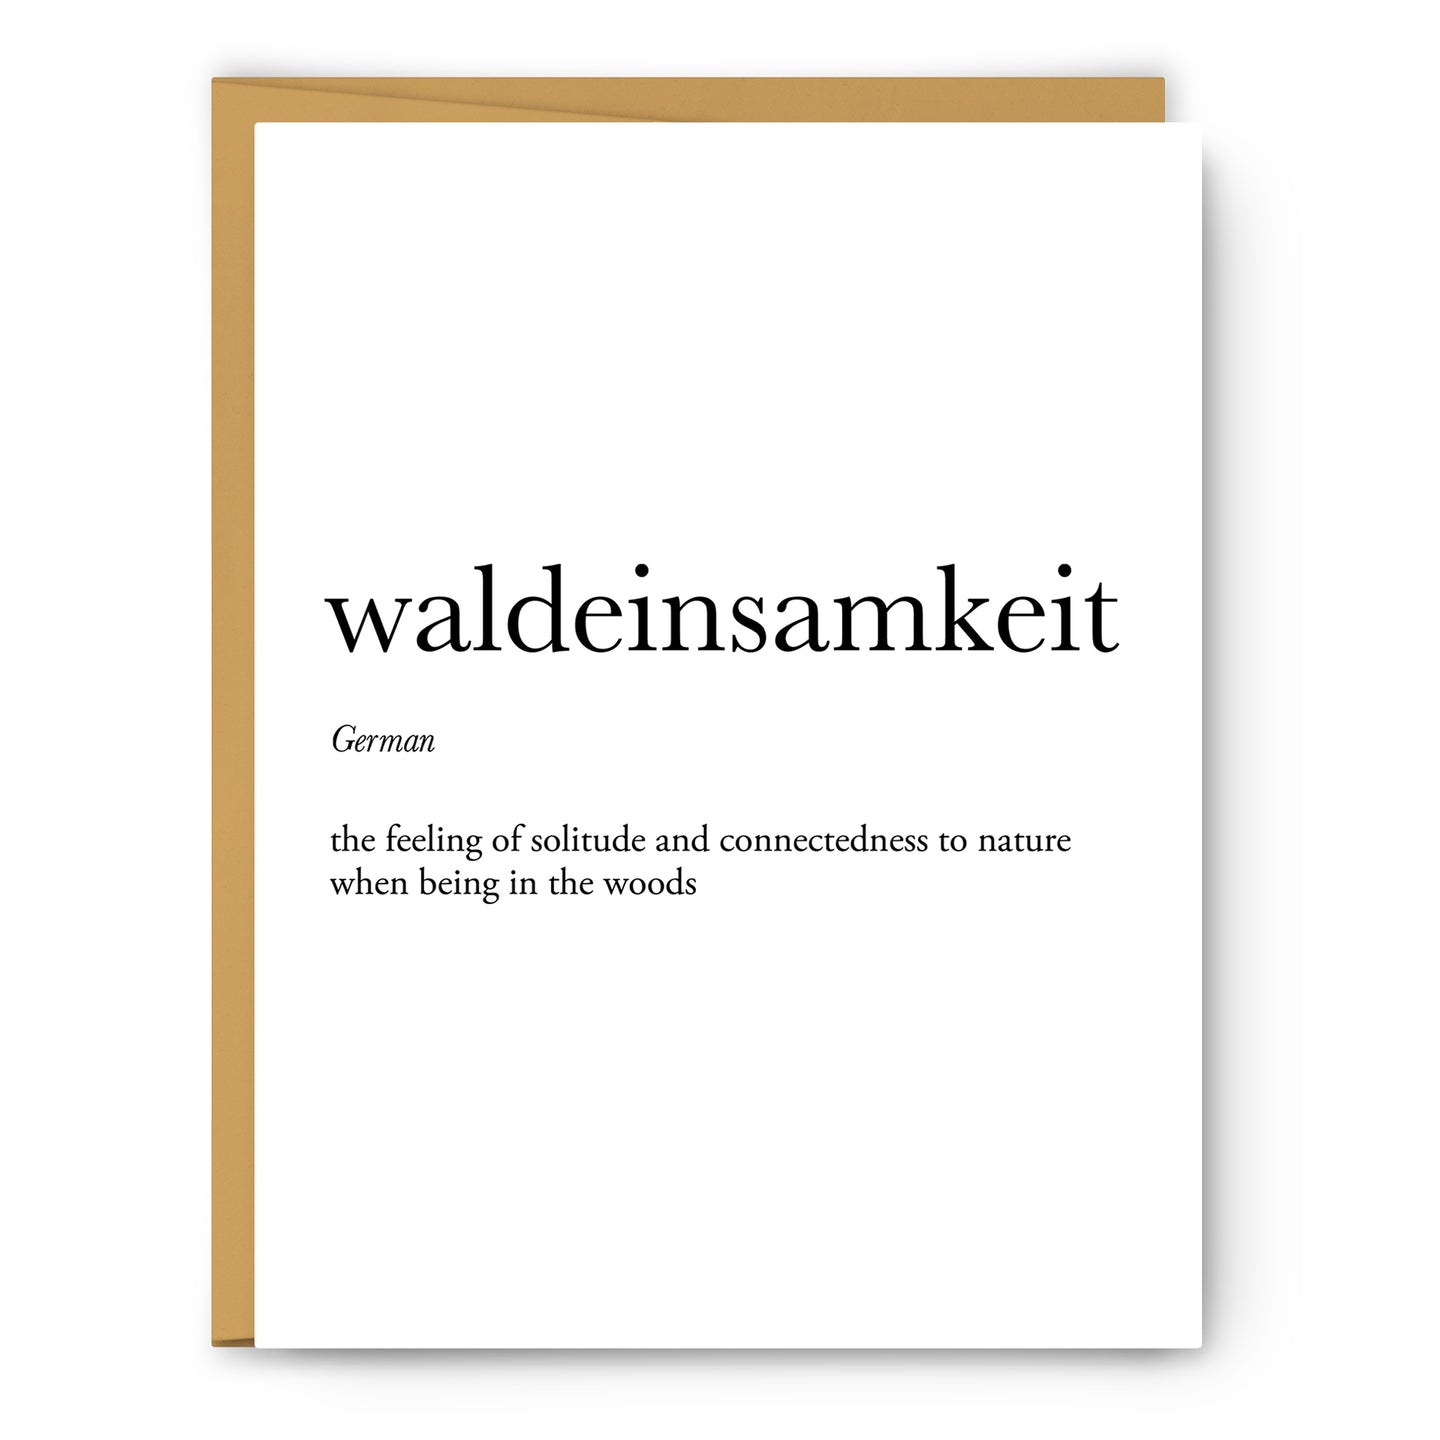 Waldeinsamkeit Definition - Unframed Art Print Or Greeting Card